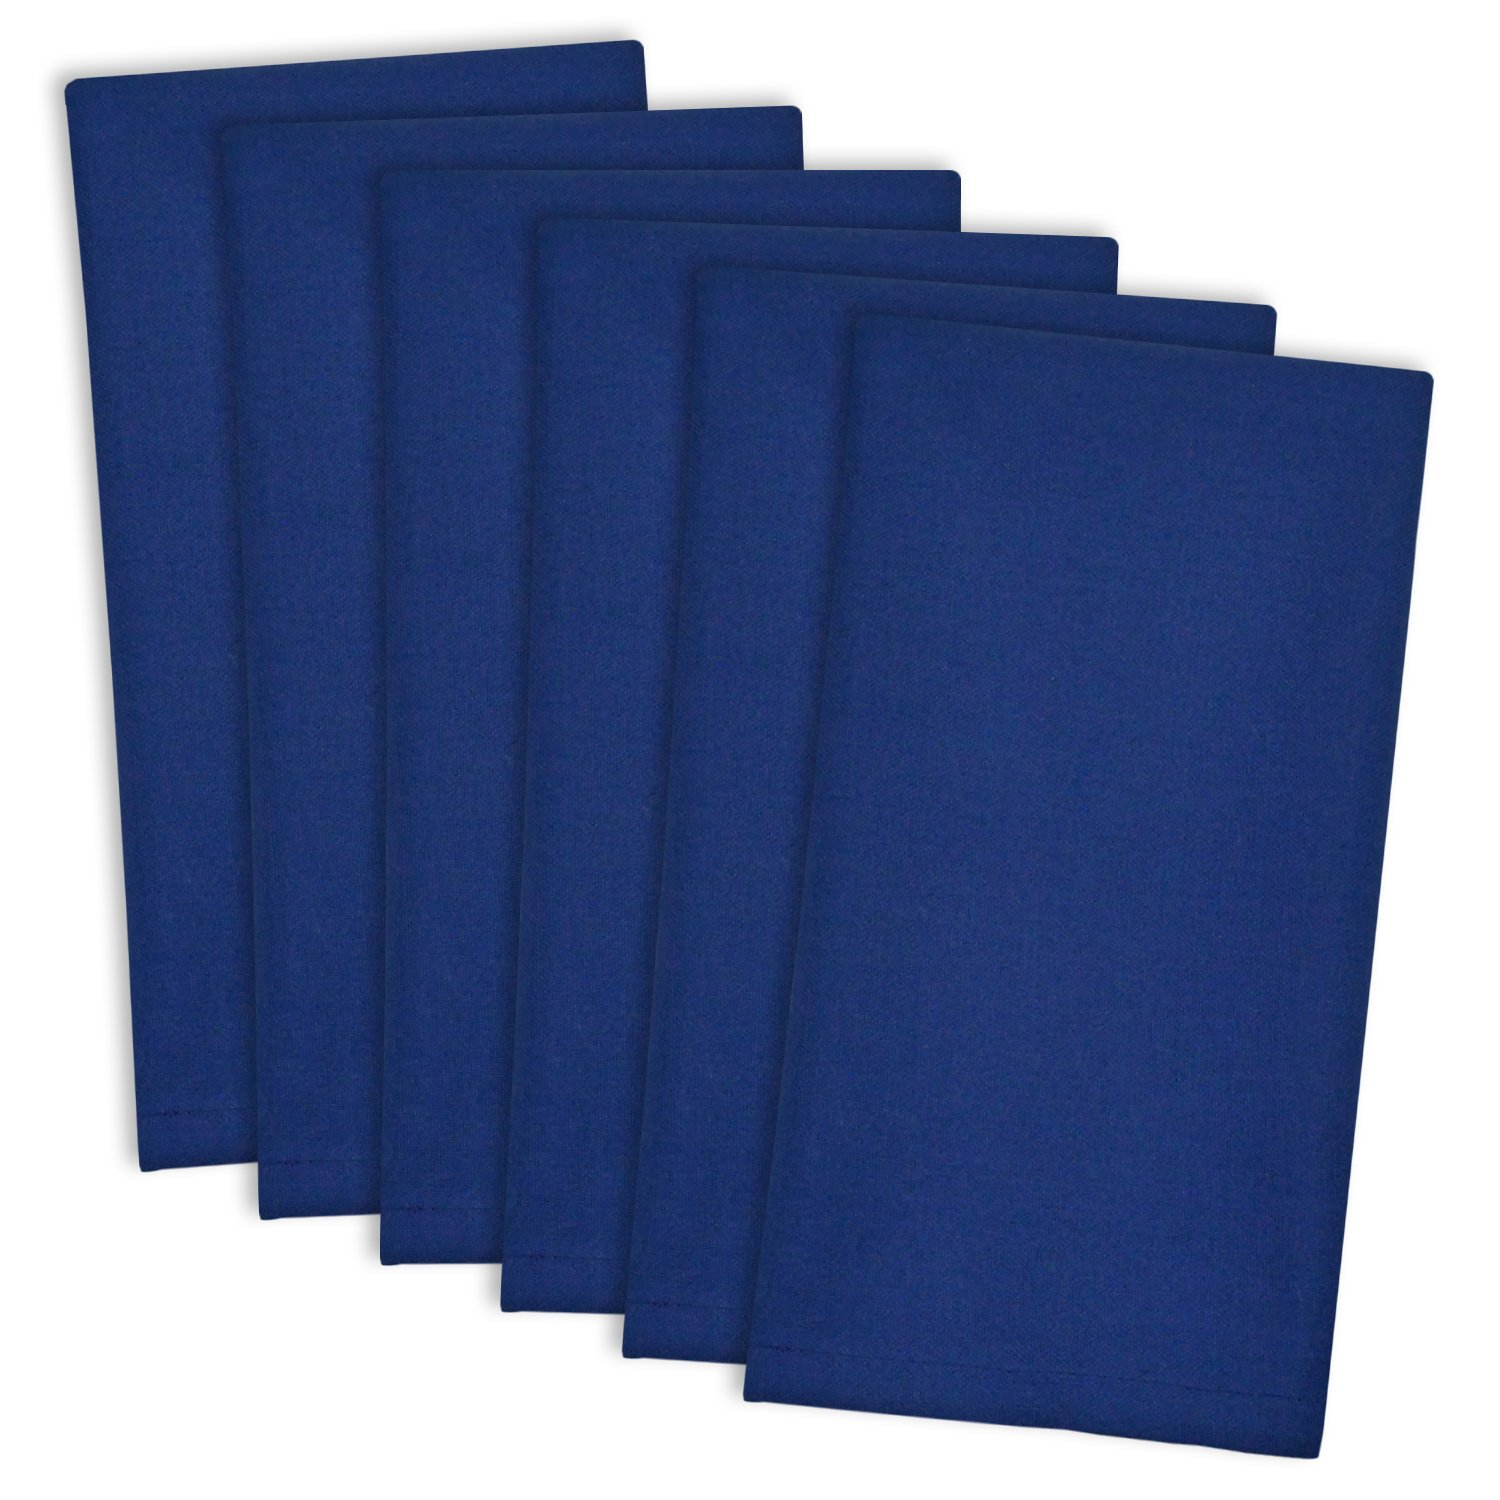 DII 100% Cotton Cloth Napkins, Oversized 20x20'' Dinner Napkins, For Basic Everyday Use, Banquets, Weddings, Events, or Family Gatherings - Set of 6, Anchor Blue